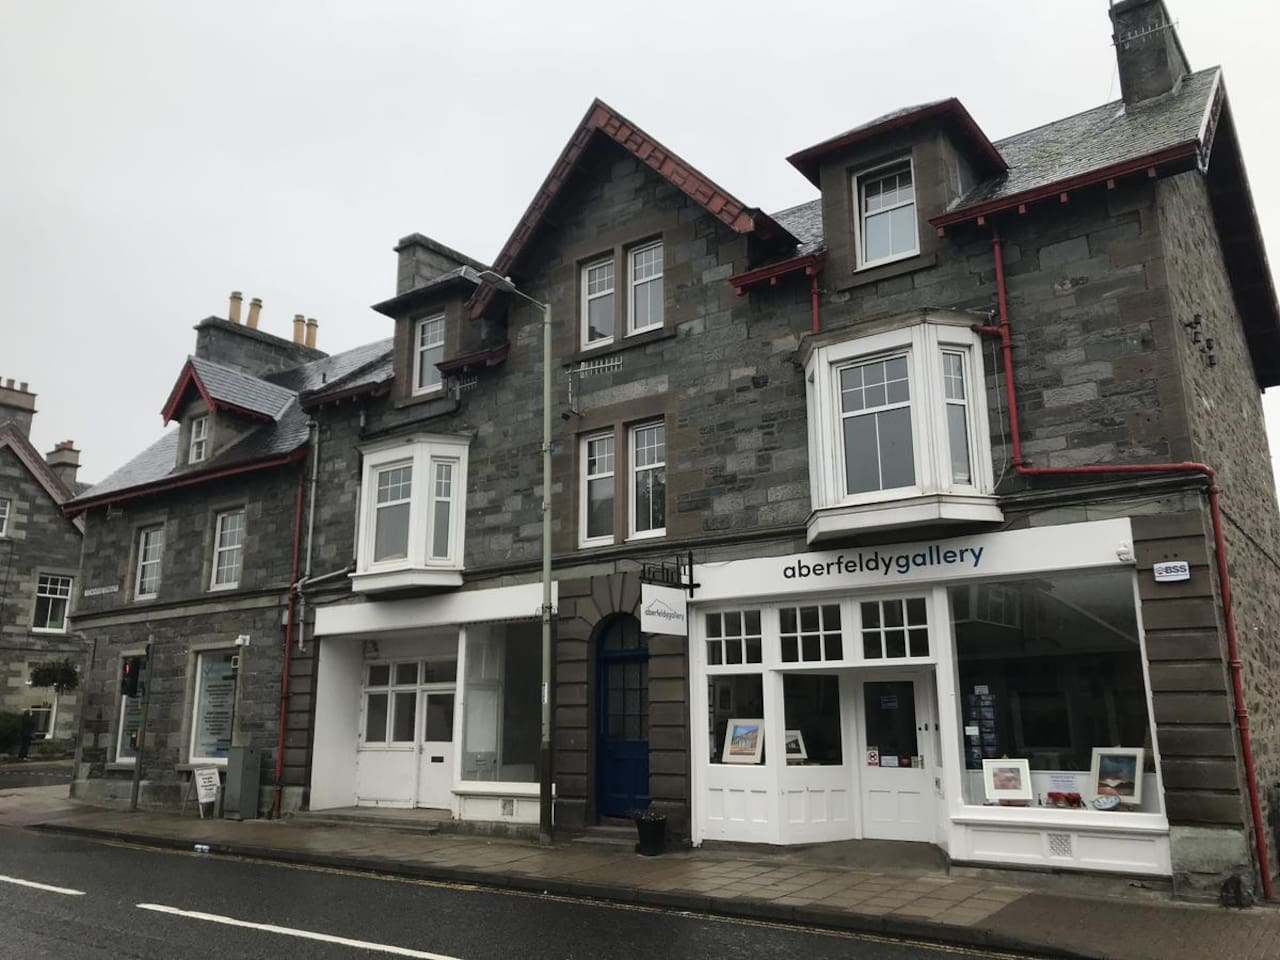 Kynachan, 5 Kenmore Street. Your double room can be seen to the left of the street light, through the blue door up the stairs, at the crossroads in the centre of Aberfeldy.